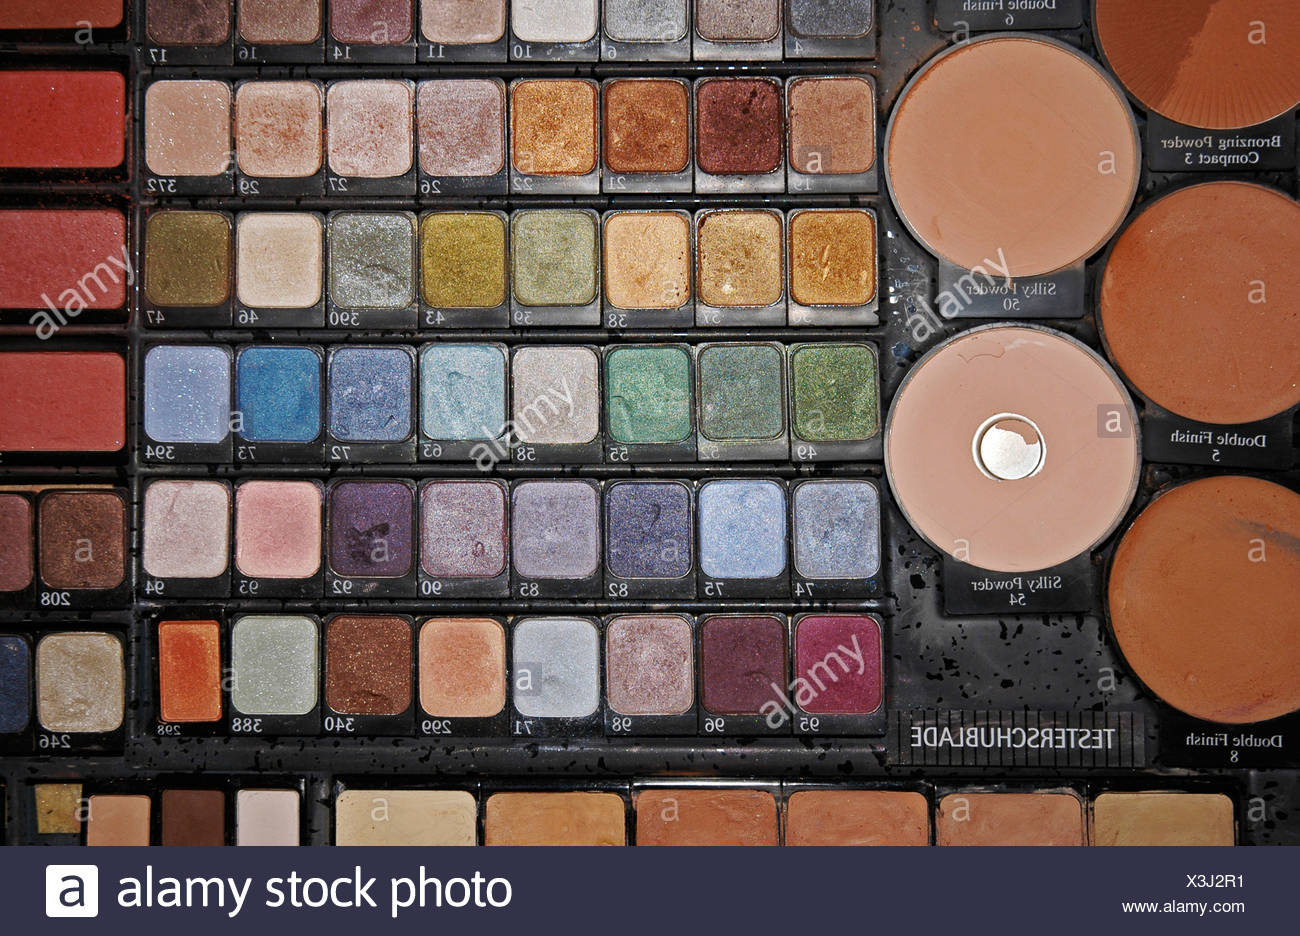 Tester drawer, makeup, make-up, powder, eye shadow, utensils, Makeup, cosmetics, beauty, beauty care